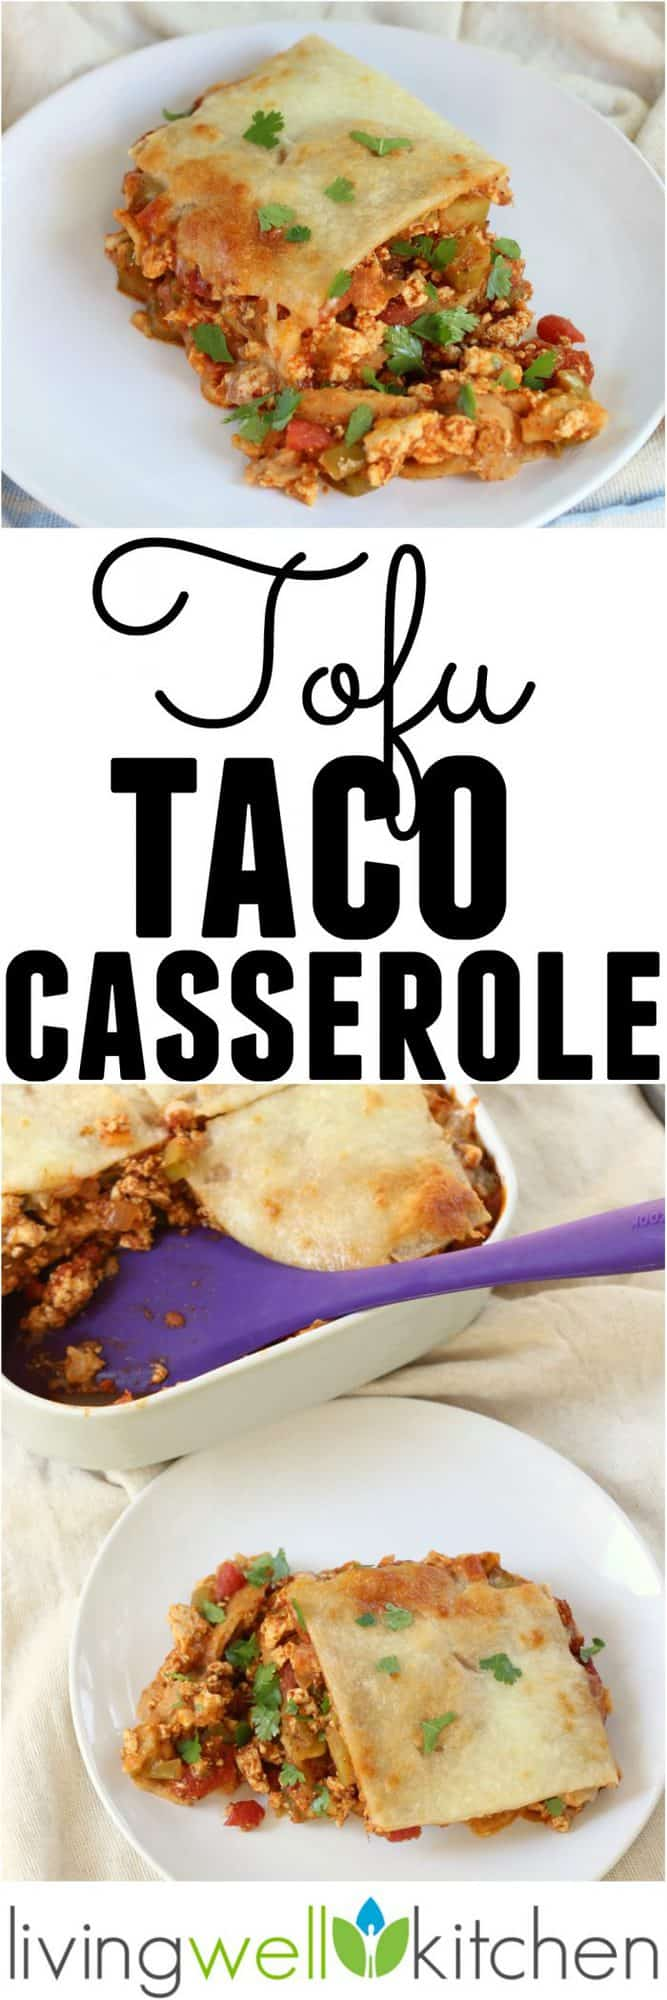 Using tofu in this tasty taco casserole keeps your budget in check while adding fiber and plant based protein. This Tofu Taco Casserole recipe is a healthy casserole great for a meatless dinner and leftovers are delicious, too! Gluten free and can be vegan by using dairy free cheese